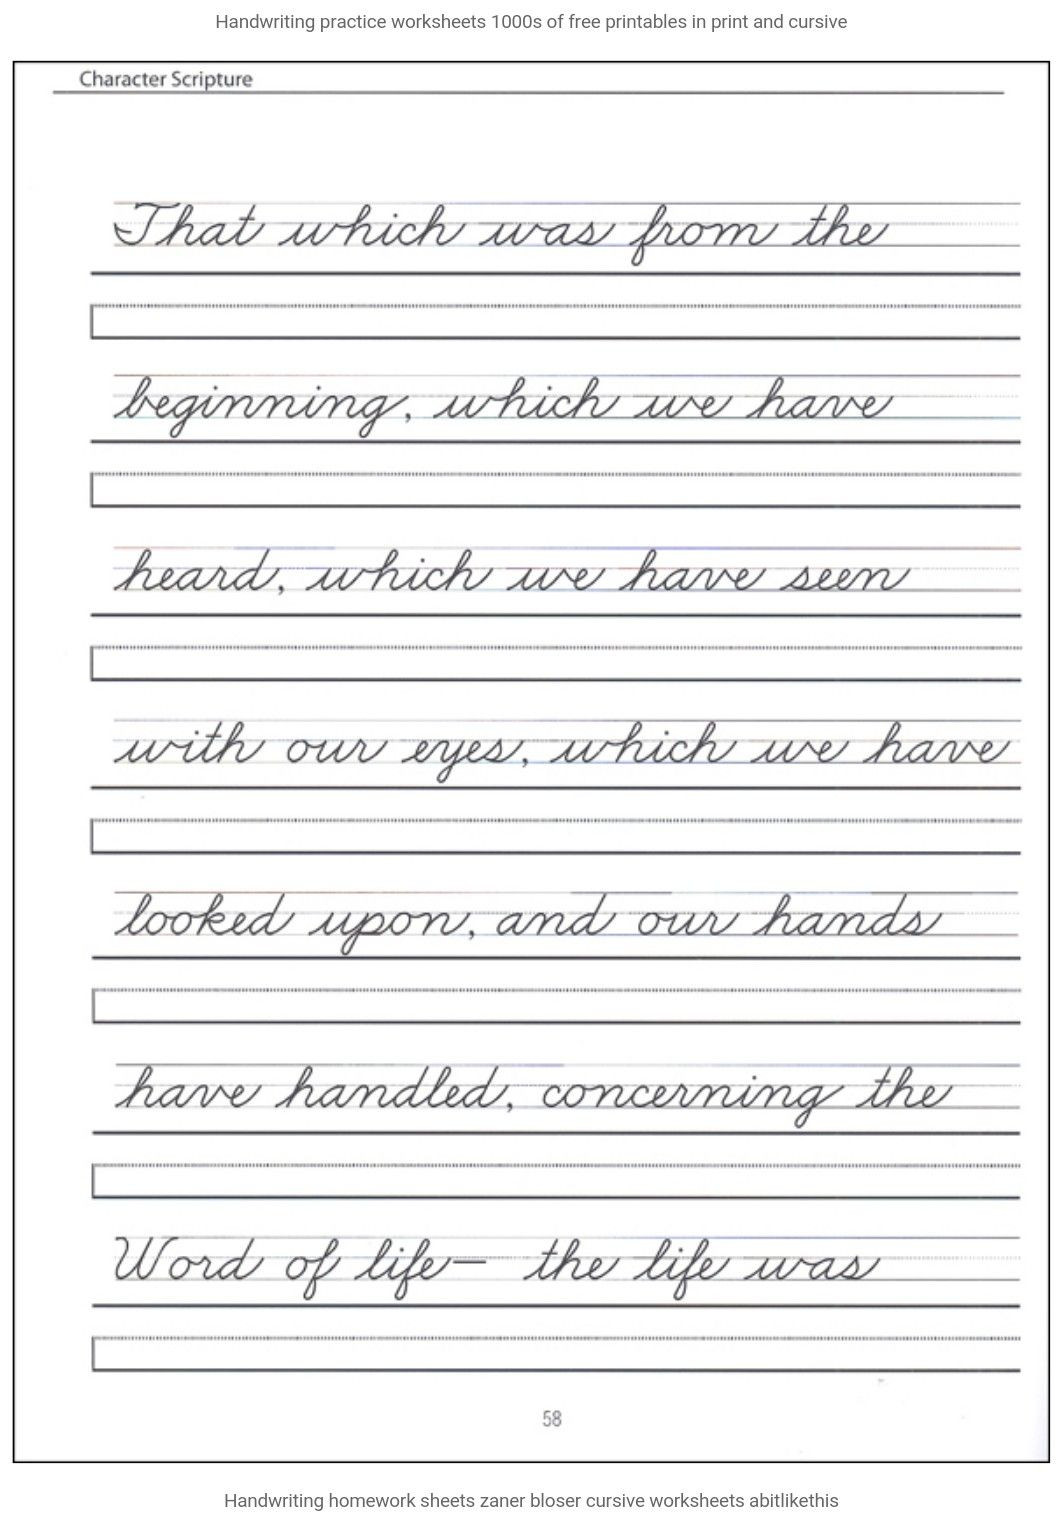 Cursive Sentences Worksheets Printable Pin by Annette 🌸🌼🌺 On Cursive Writing